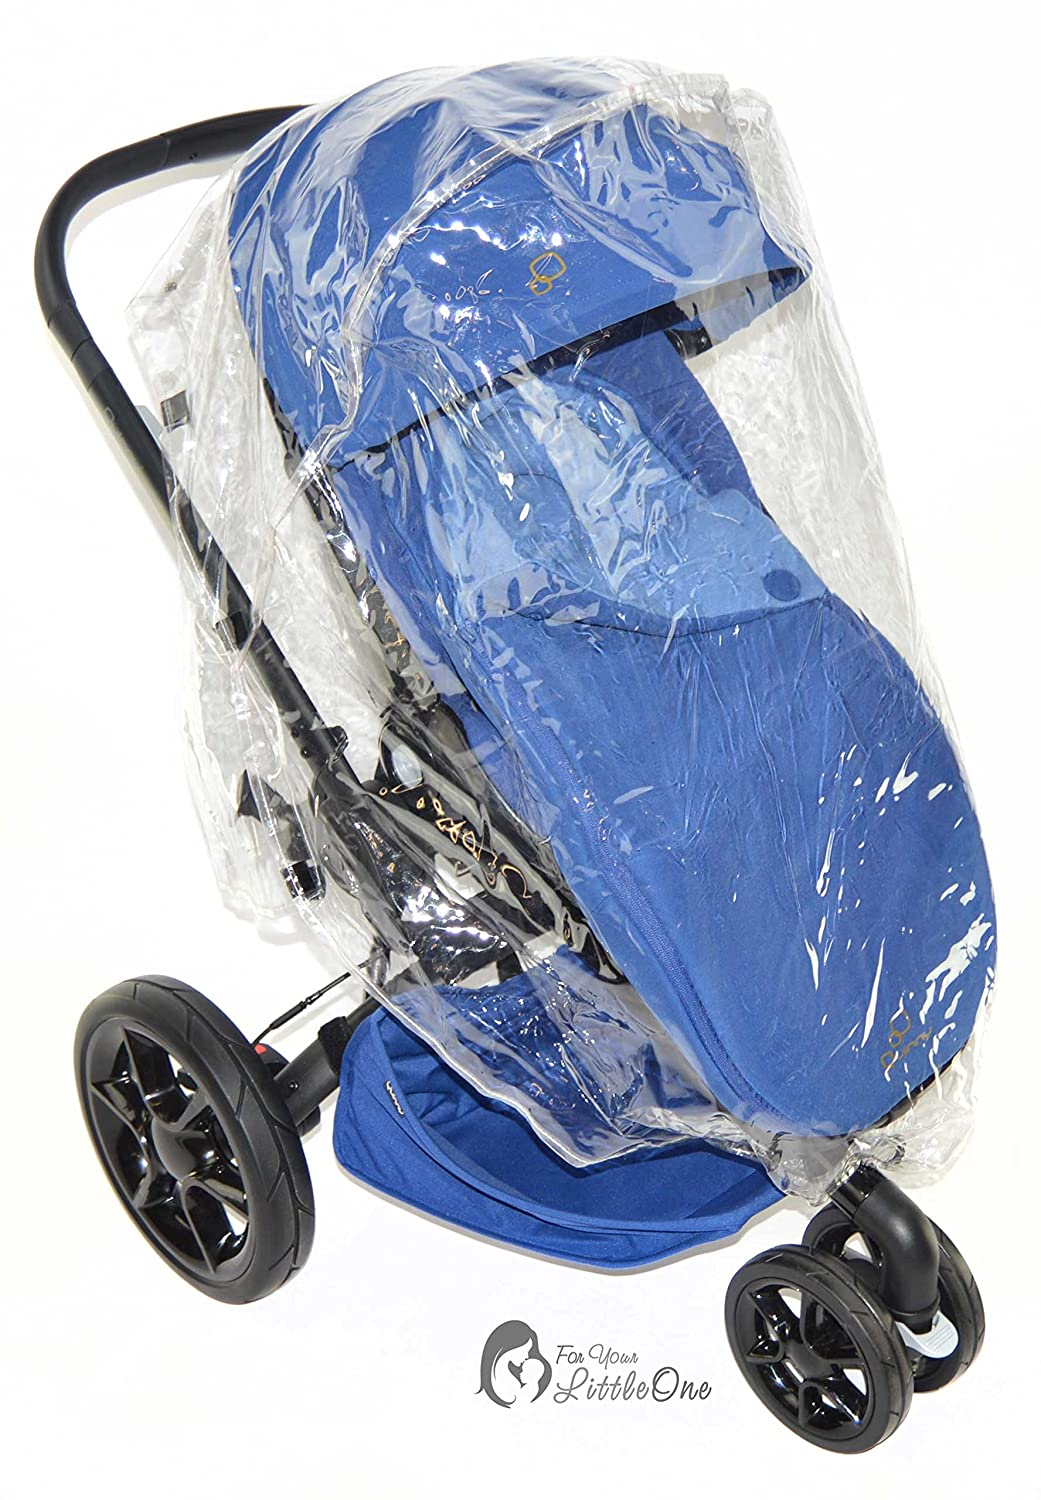 BABY  TODDLER STROLLER WATERPROOF CLEAR TRANSPARENT WITH BLUE TRIM RAINCOVER